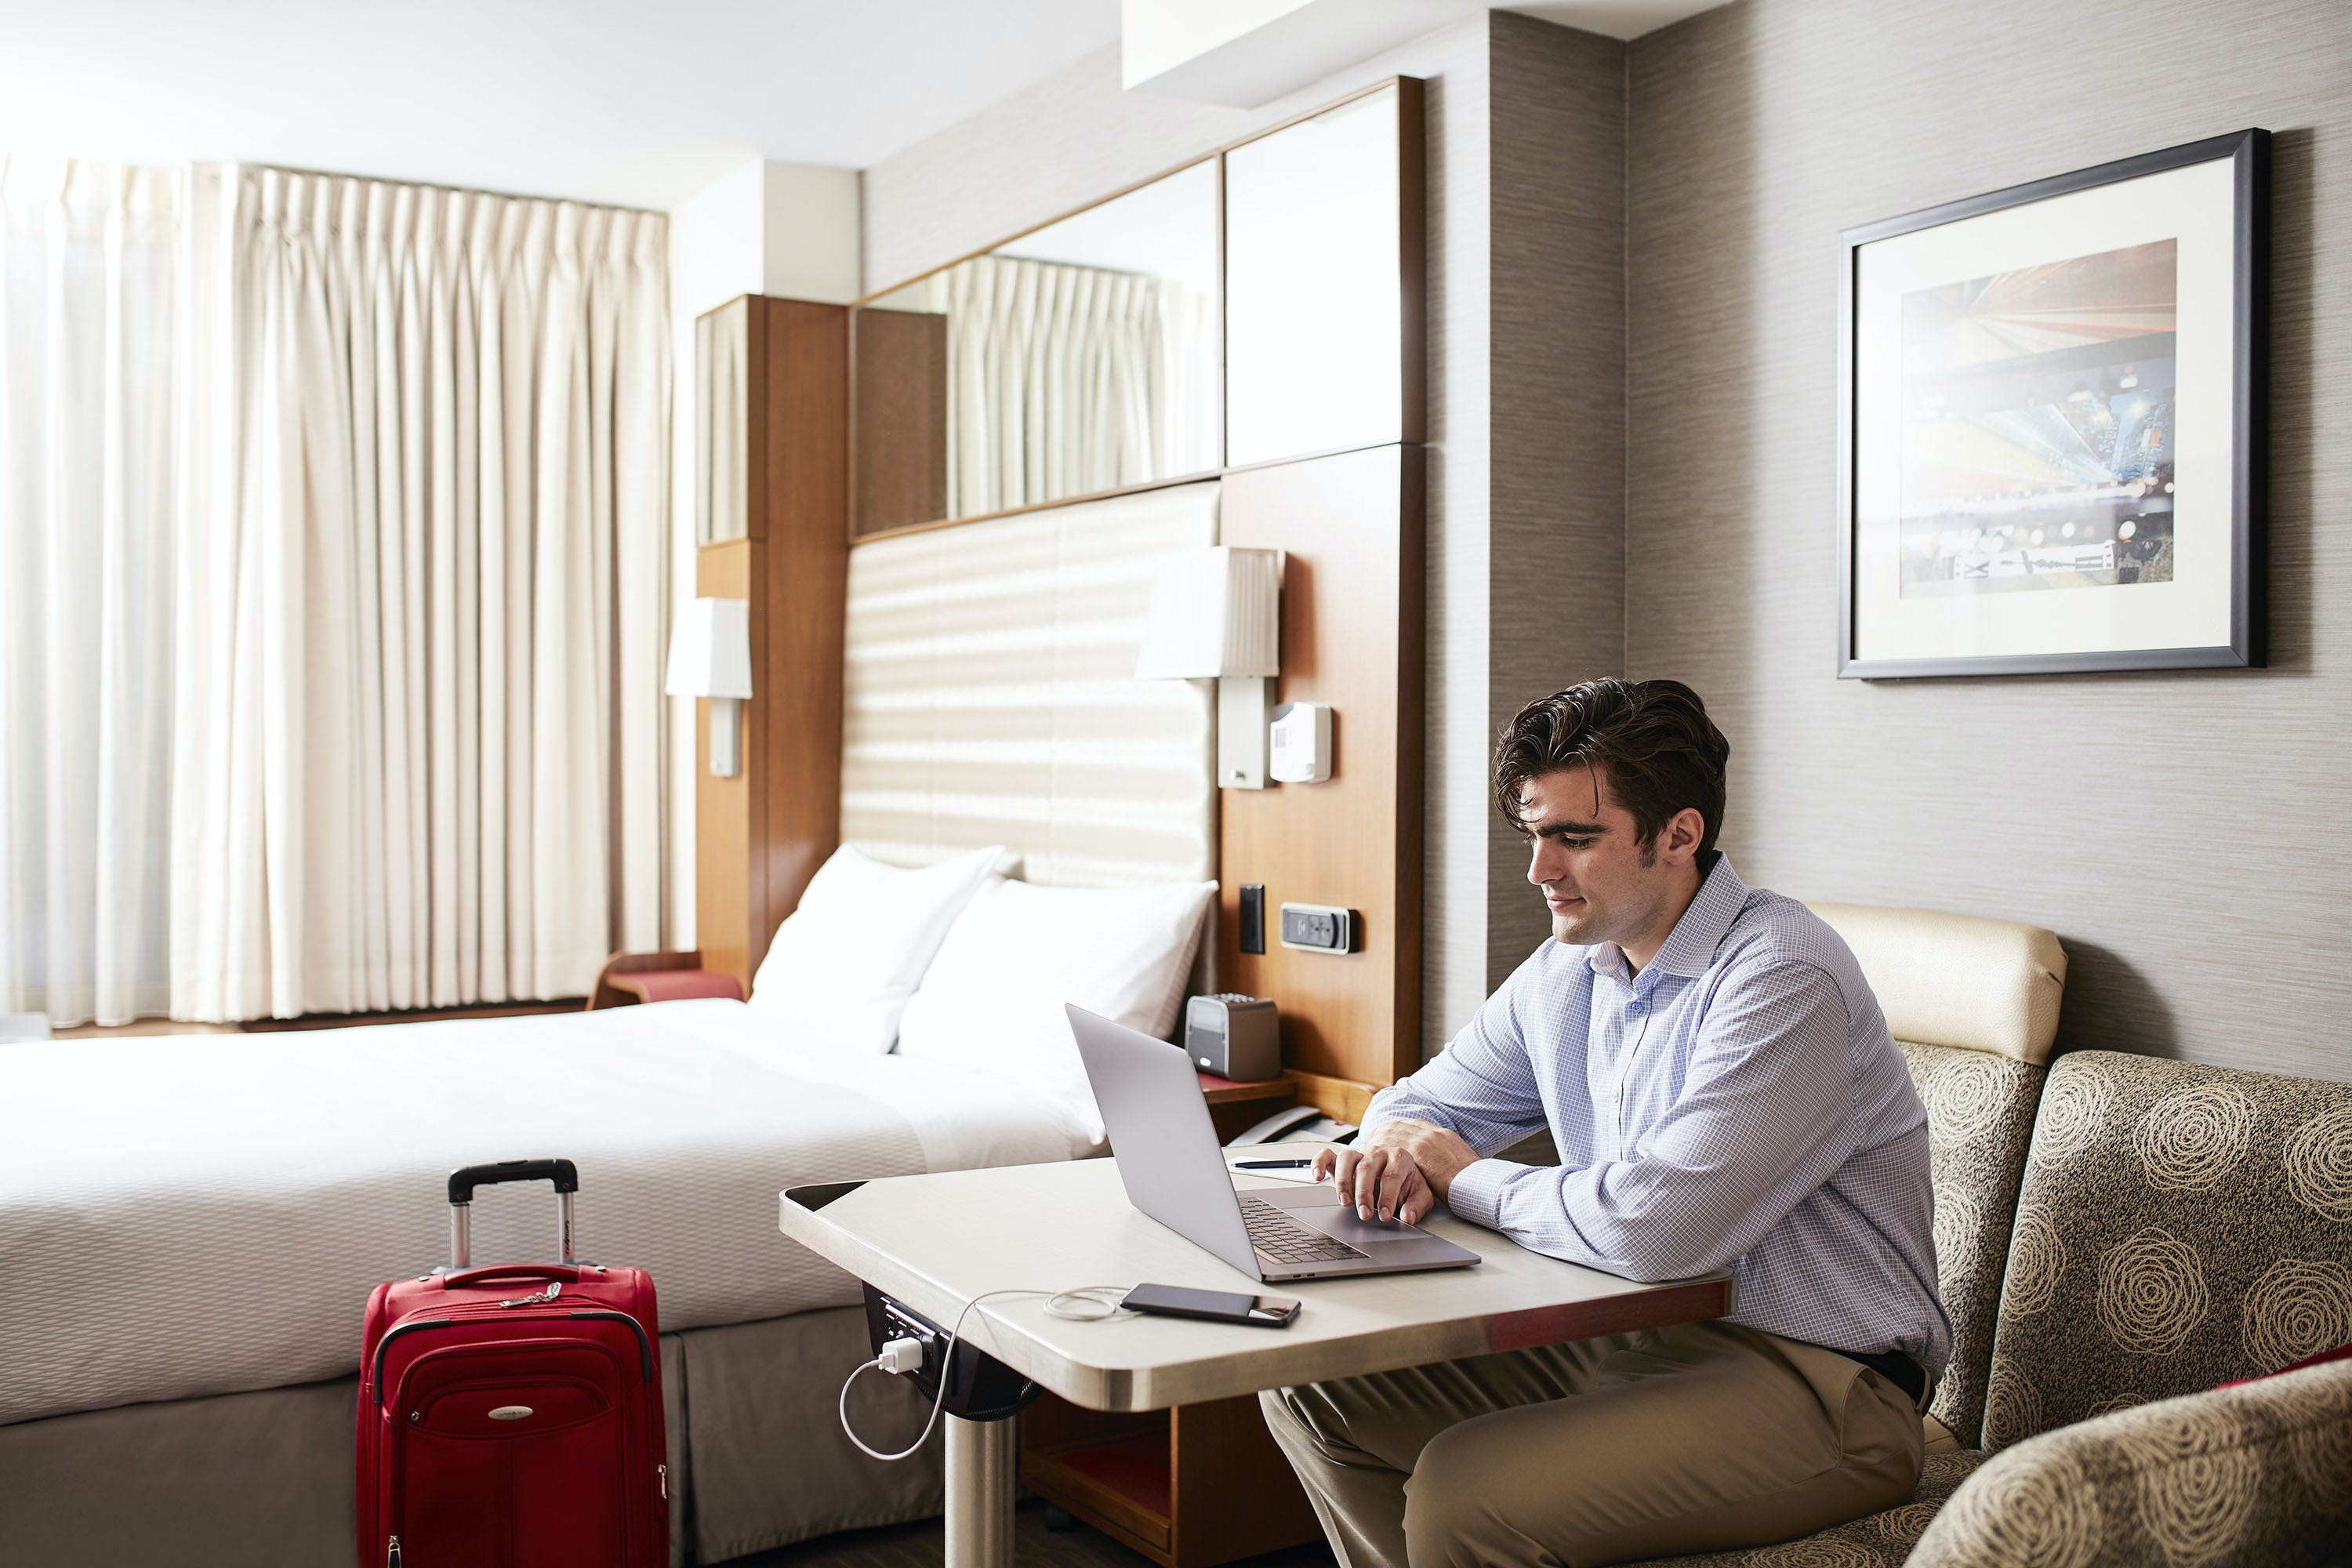 Working at the Activity Center in a Standard Room at Club Quarters Hotel, Grand Central